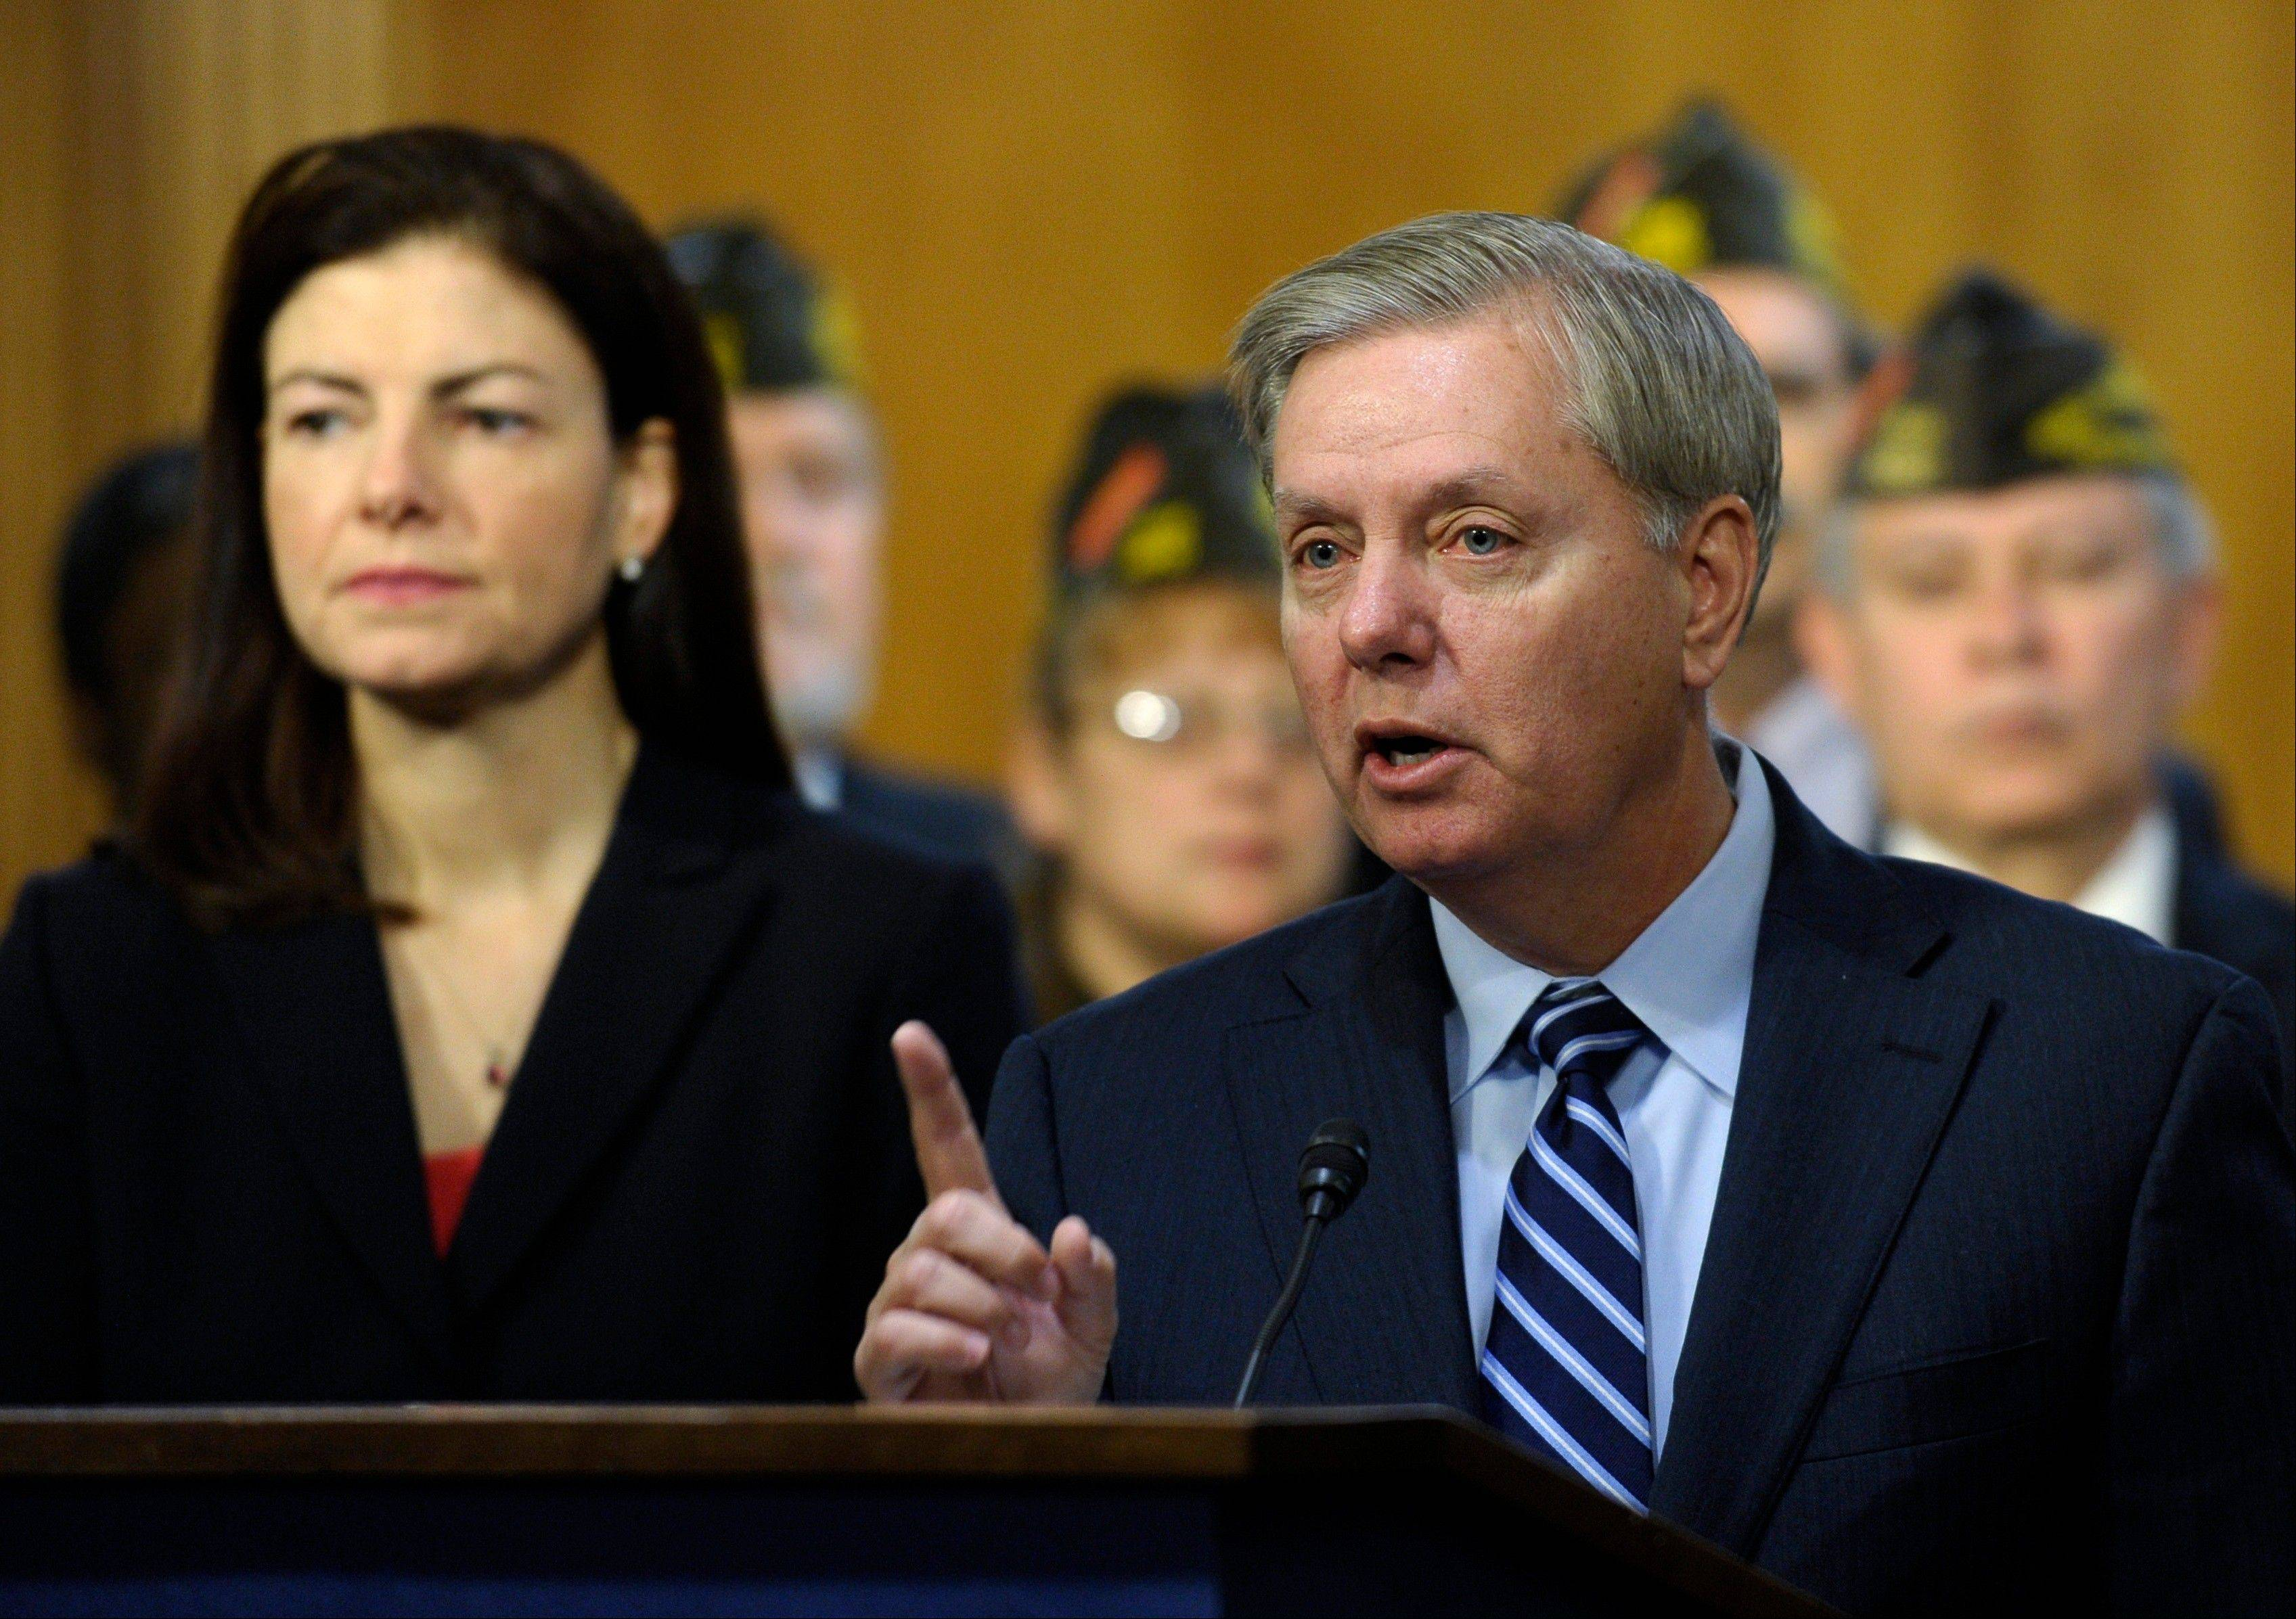 Sen. Lindsey Graham, a South Carolina Republican, right, accompanied by Sen. Kelly Ayotte, a New Hampshire Republican, urge their Senate colleagues to change the budget proposal that cuts retirement benefits for current and future military retirees prior to Tuesday�s preliminary vote.